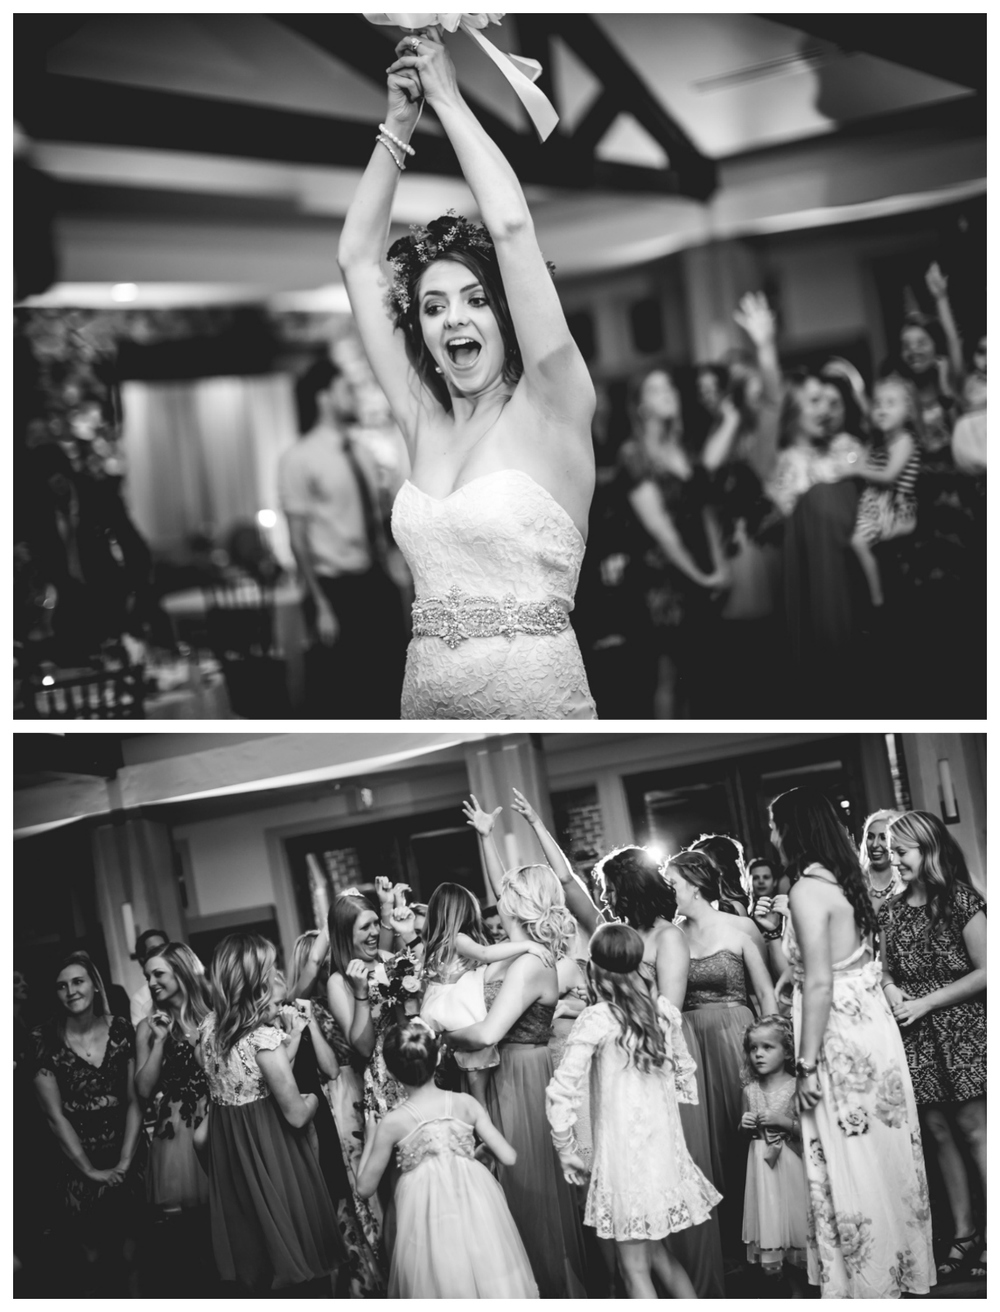 Bouquet toss at Highlands Ranch Mansion.   Photographed by JMGant Photography, Denver Colorado wedding photographer.